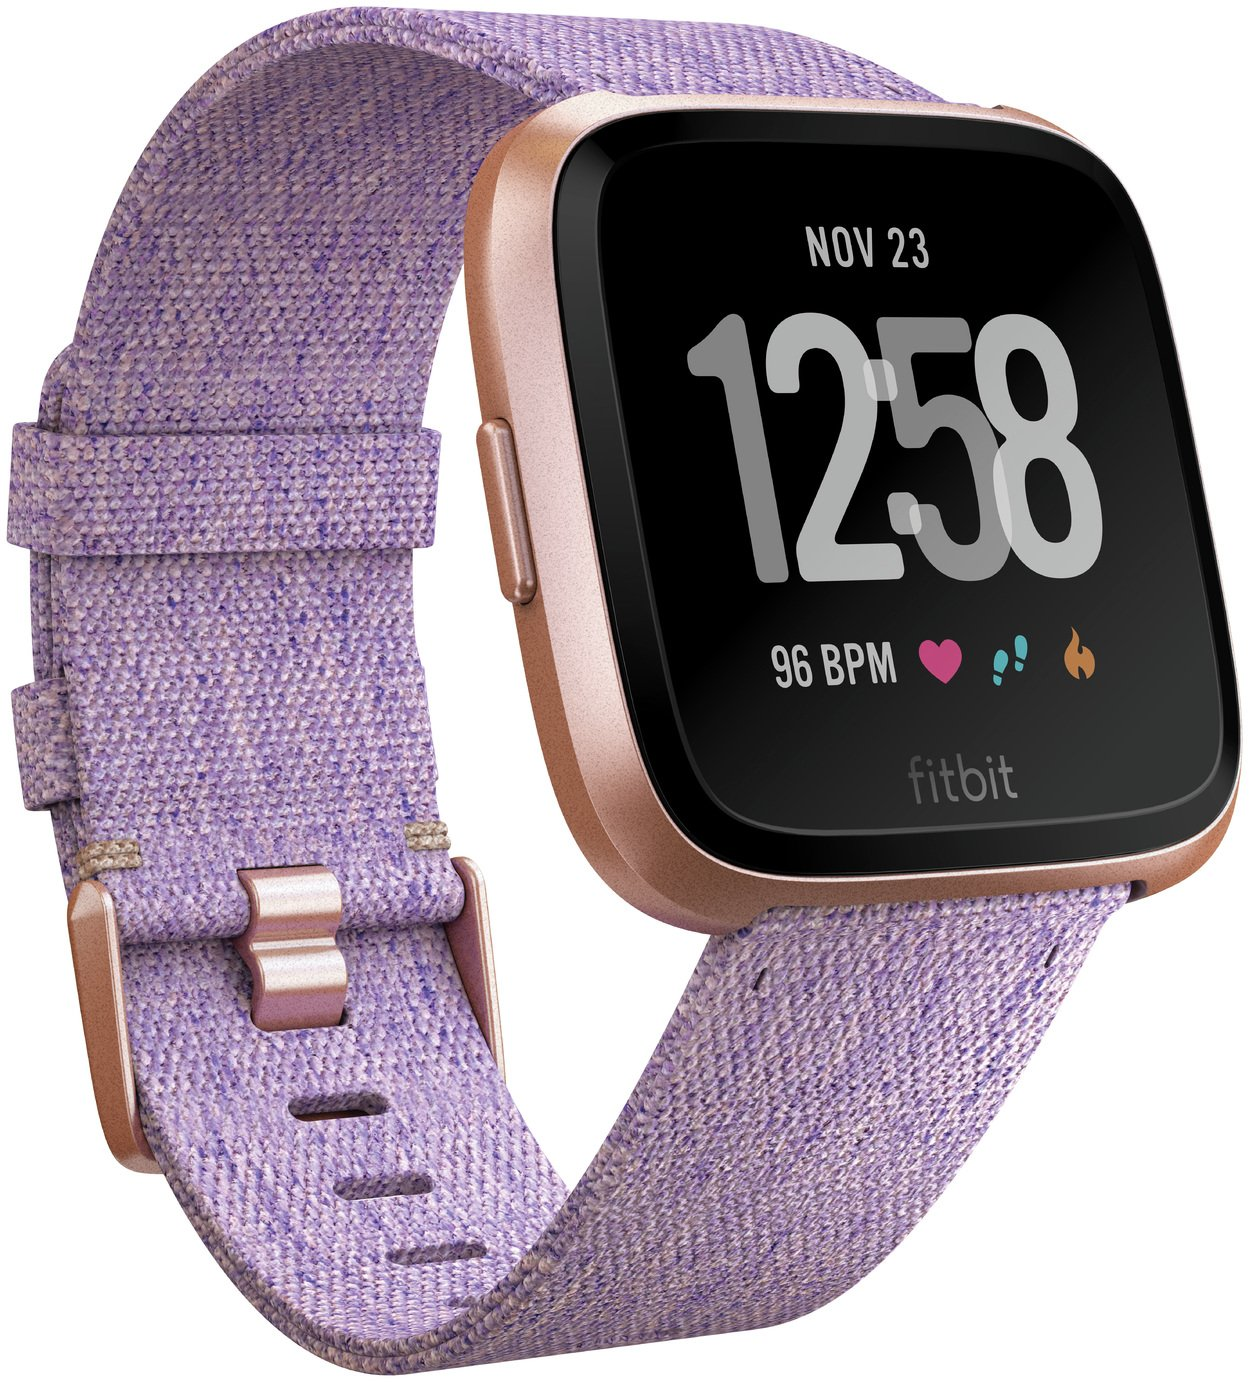 Fitbit Versa Special Edition Smart Watch - Lavender